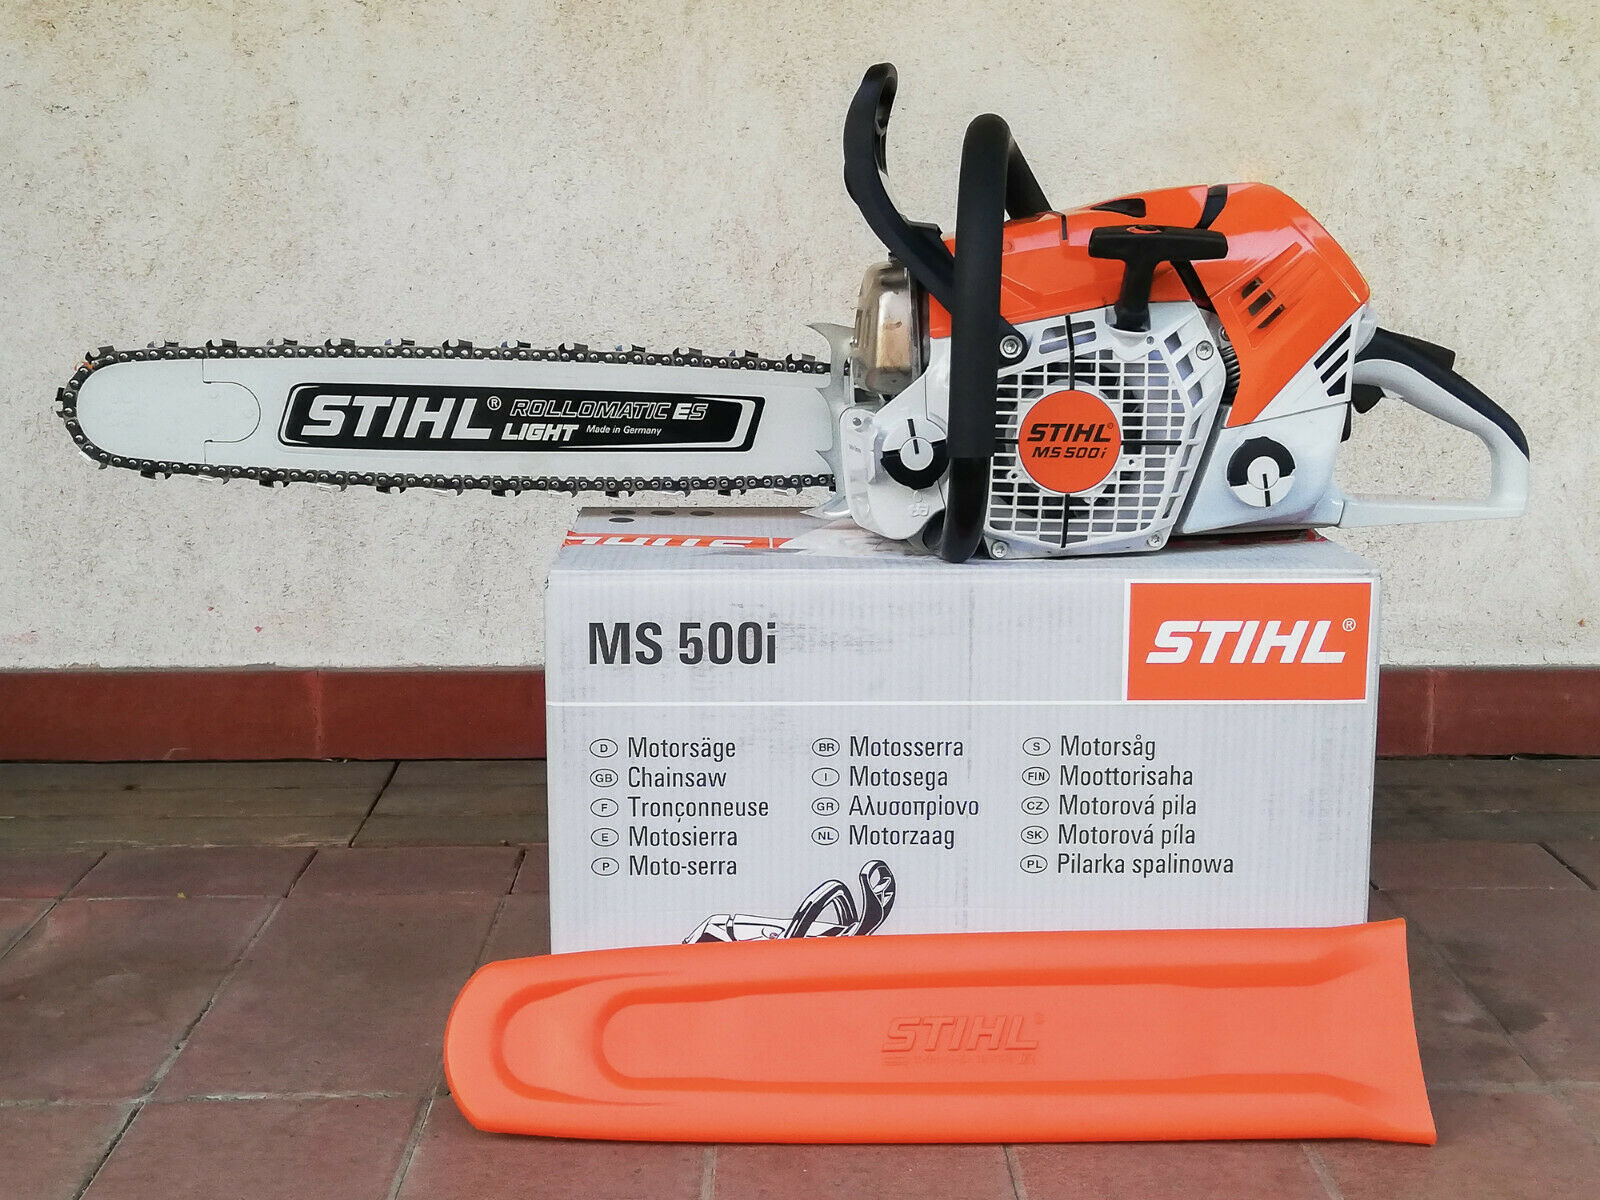 BRAND NEW ORIGINAL STIHL MS500i FUEL INJECTED CHAINSAW WITH TOOLS AND COVER. Available Now for 1899.00